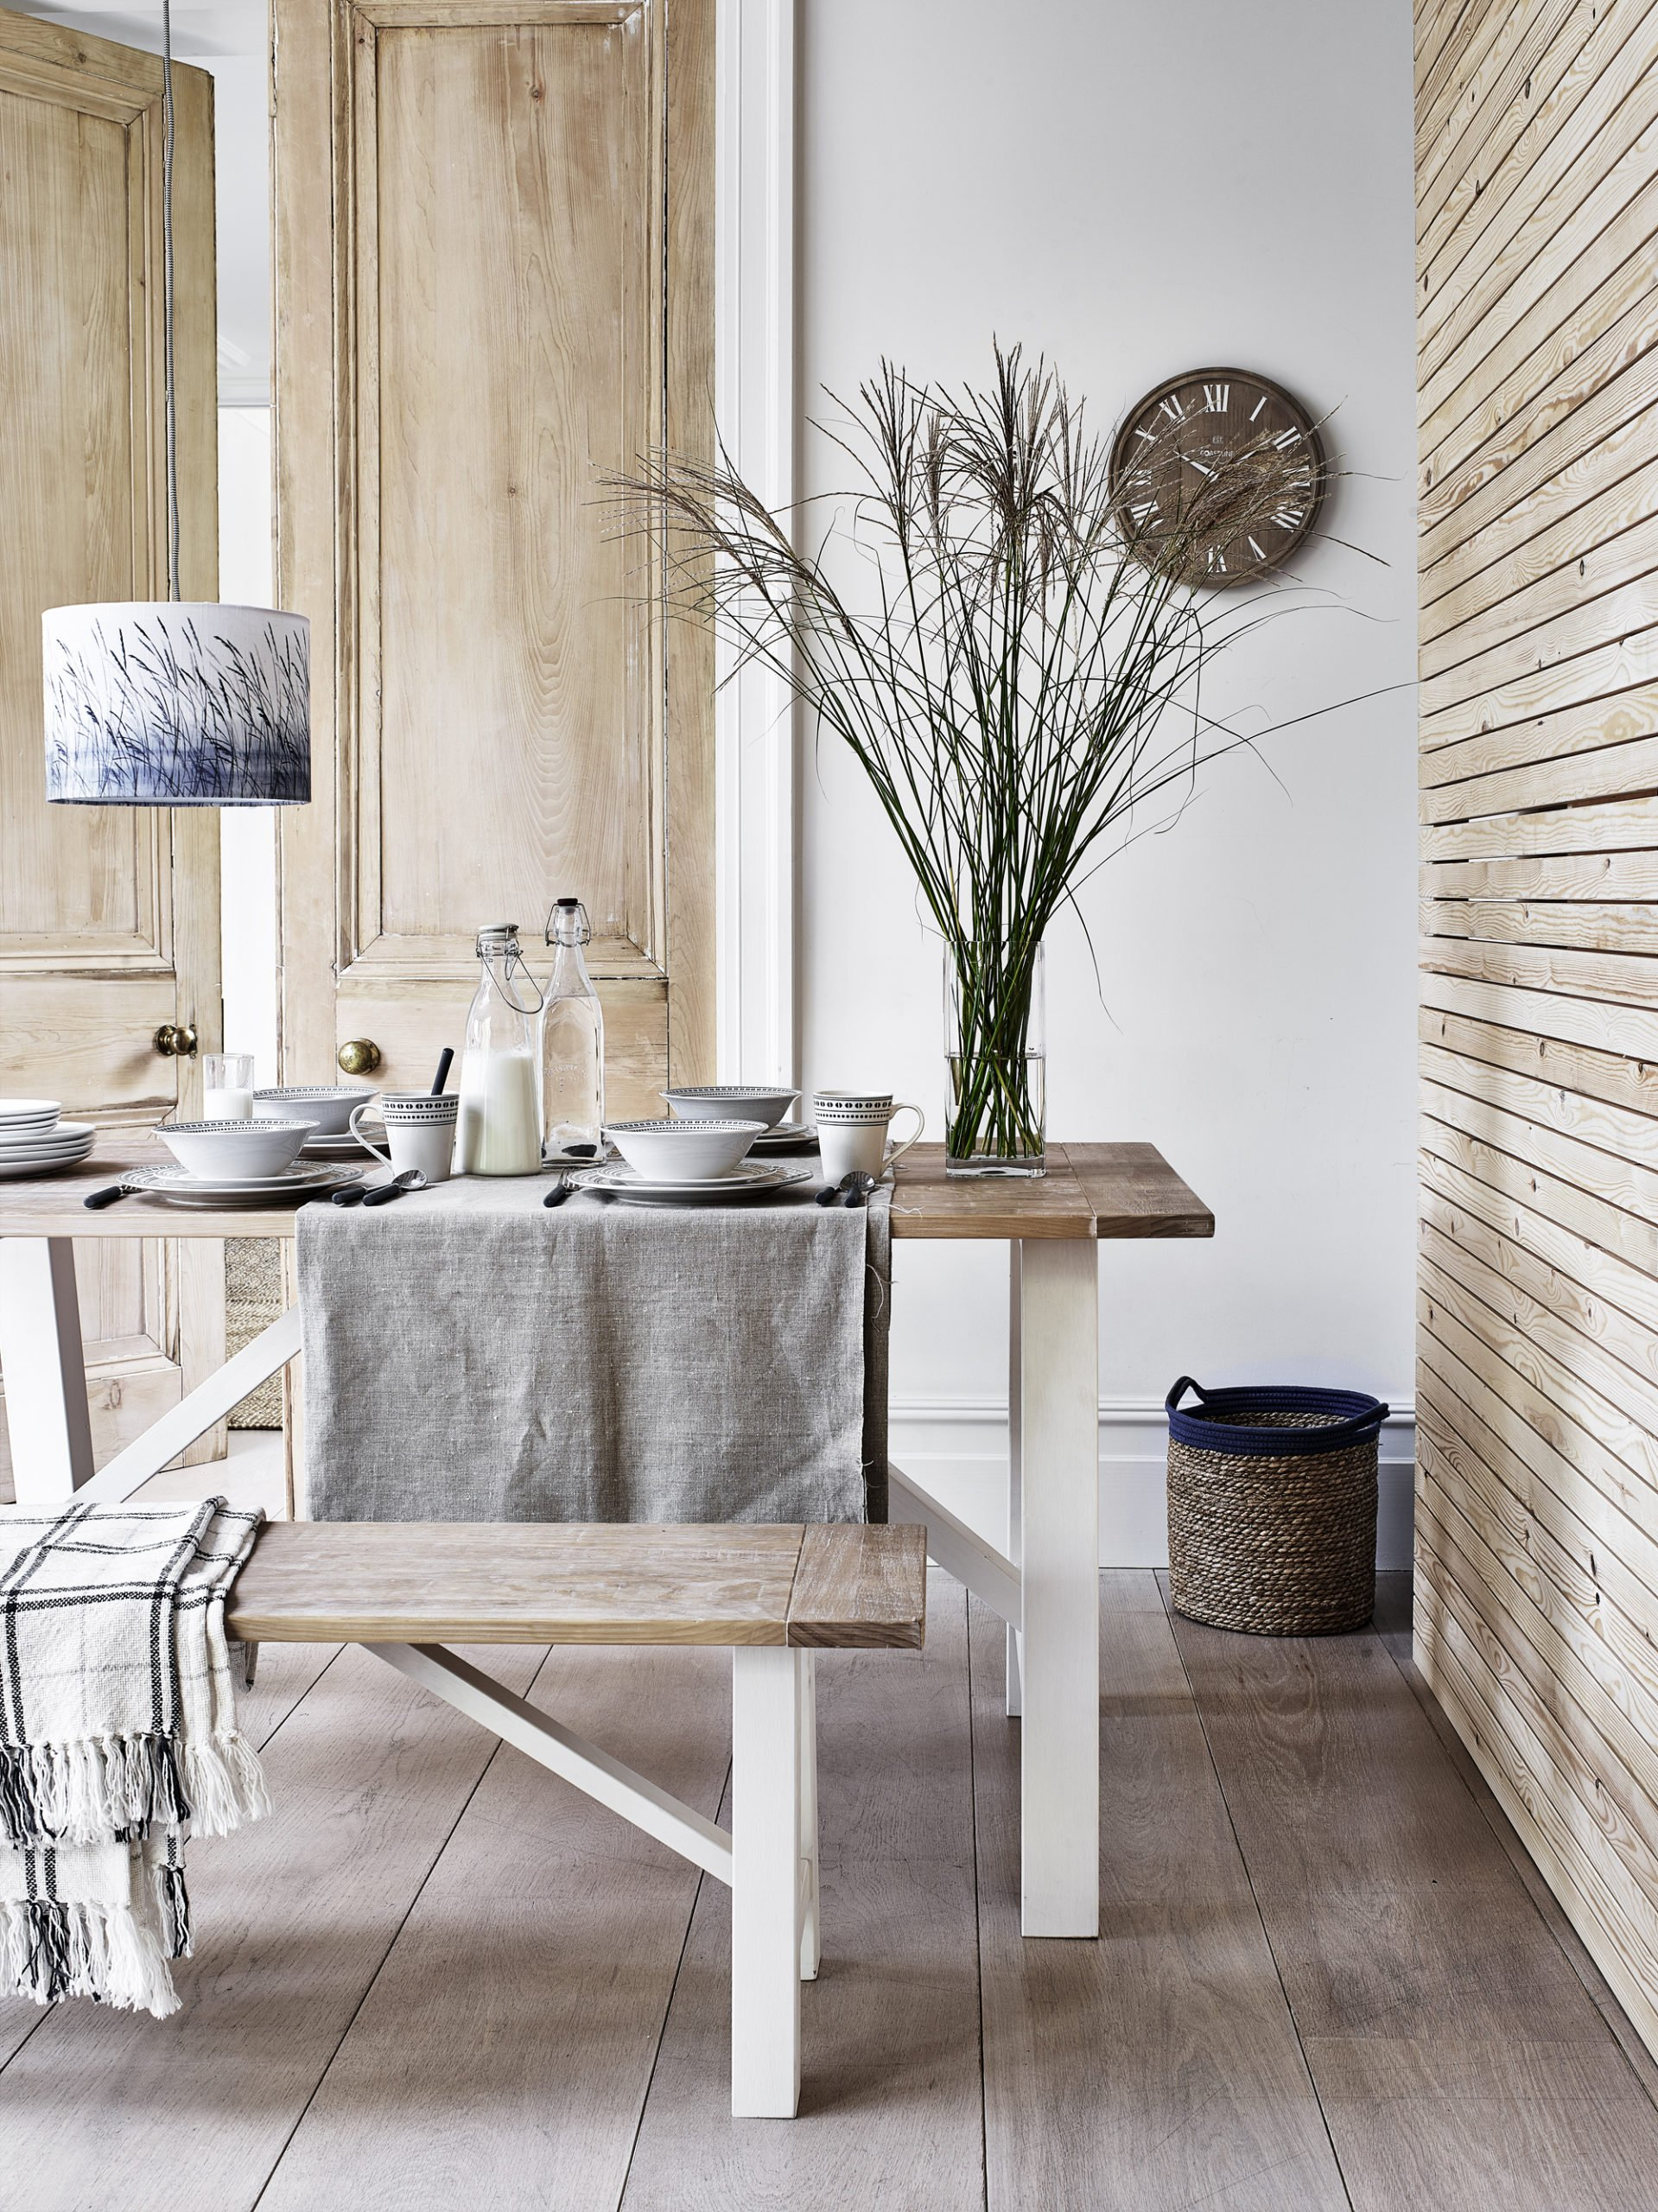 neutral rustic dining room with wooden table and bench - scandi style. Beach house.